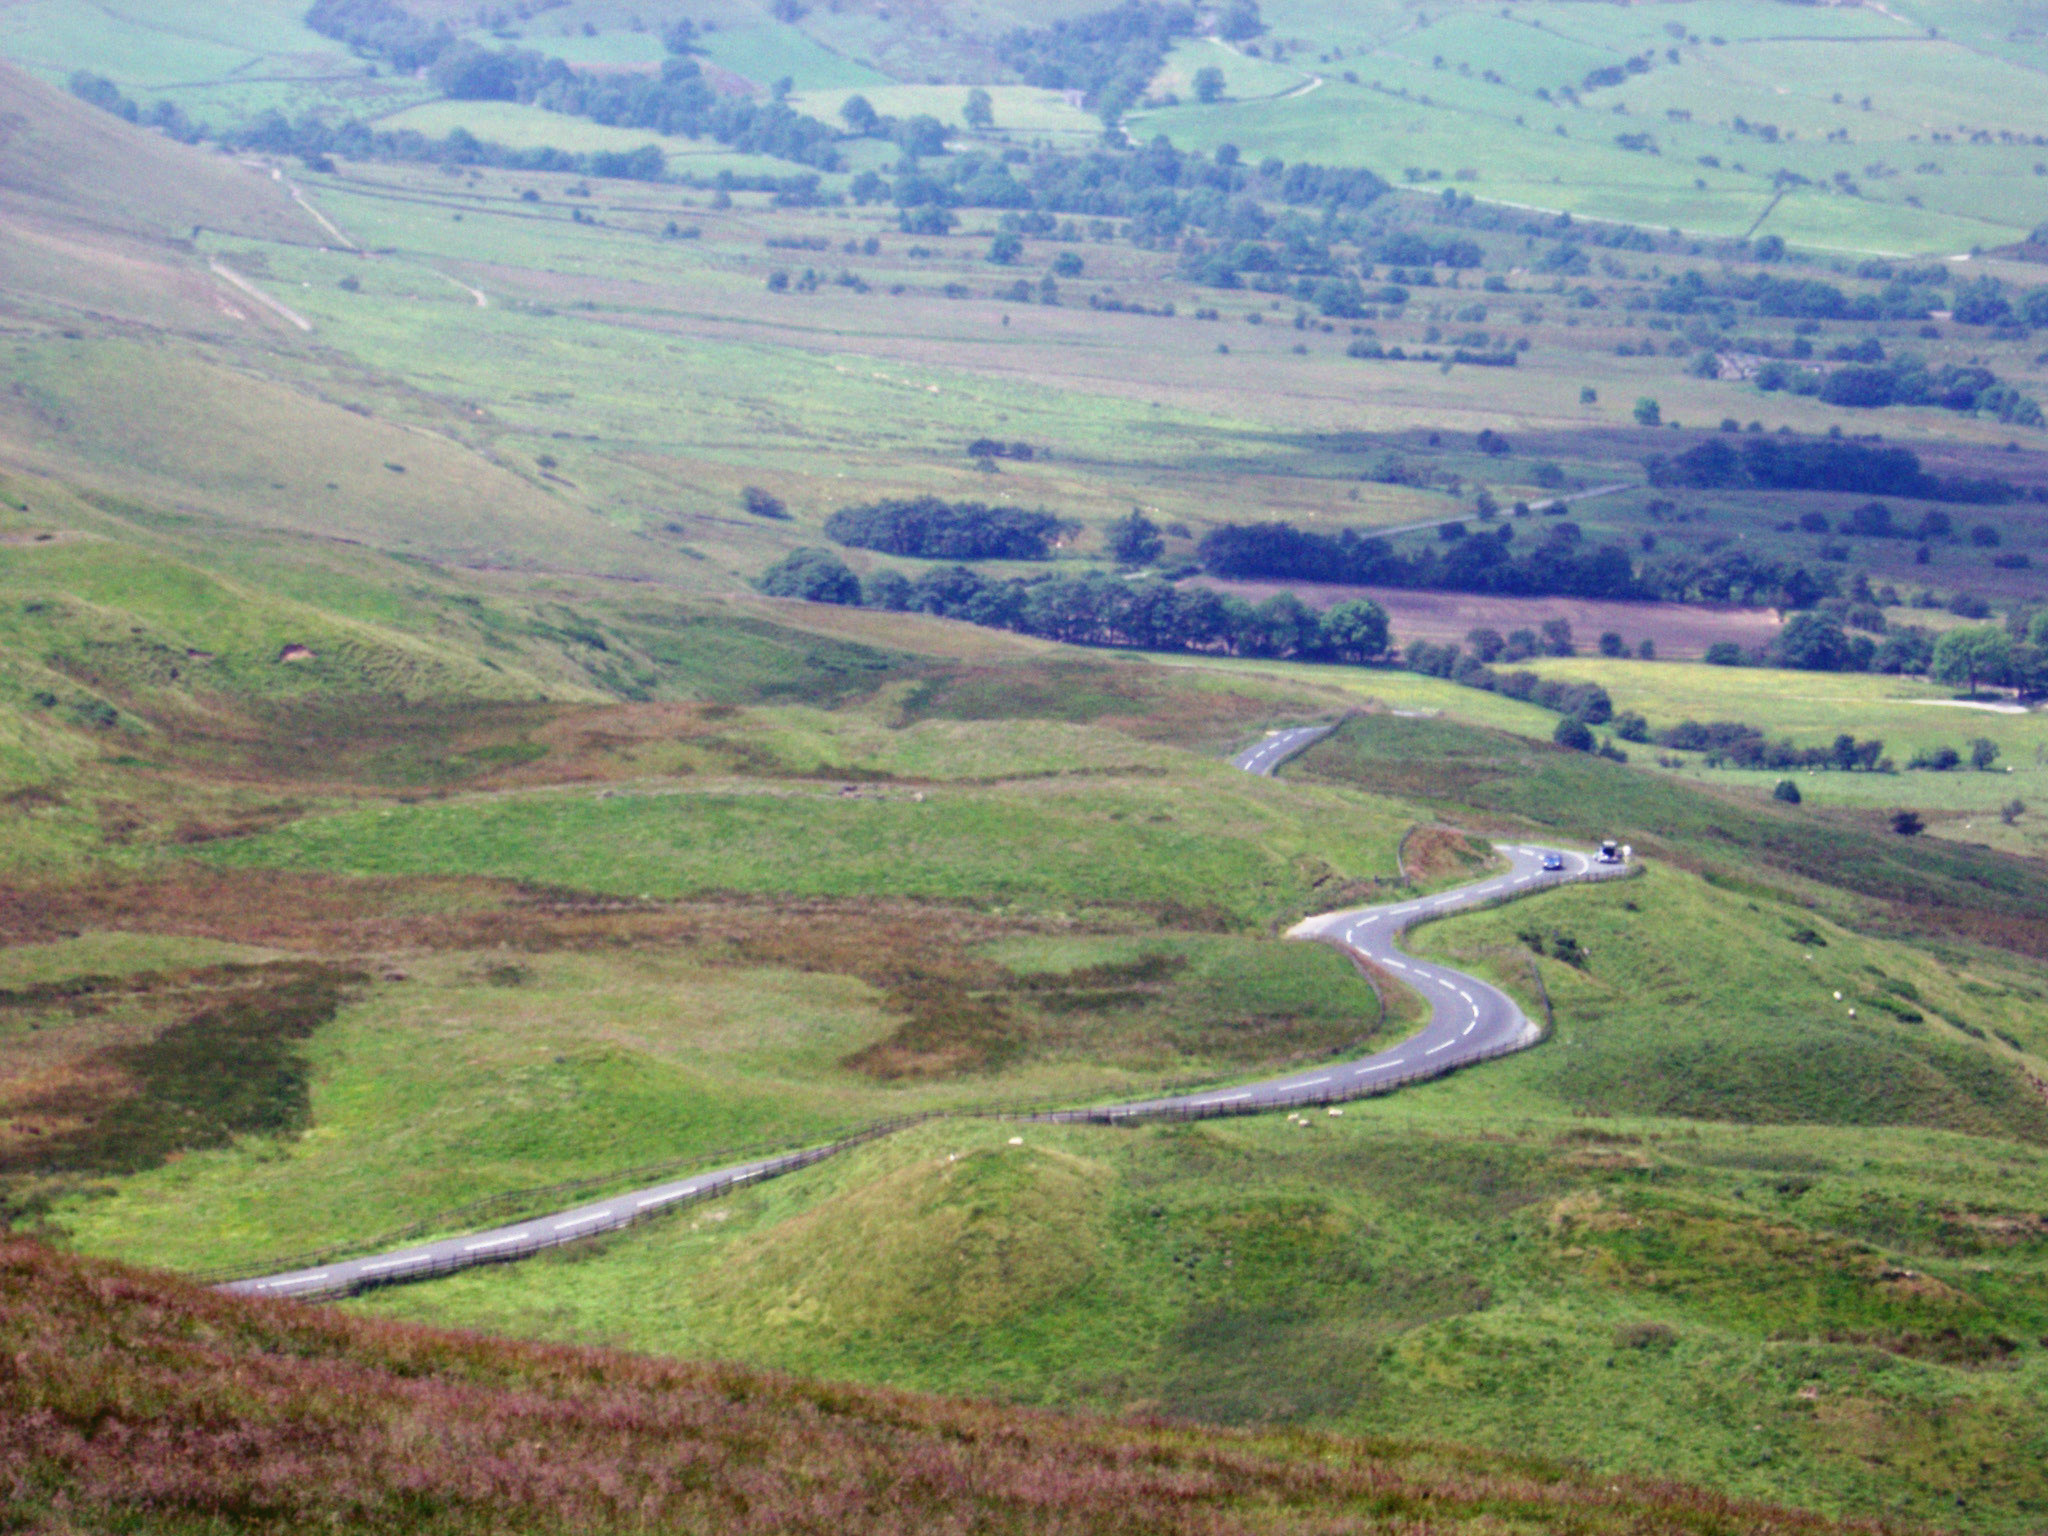 Winding road snaking through lush countryside near Edale in the Dales, Peak District, Derbyshire